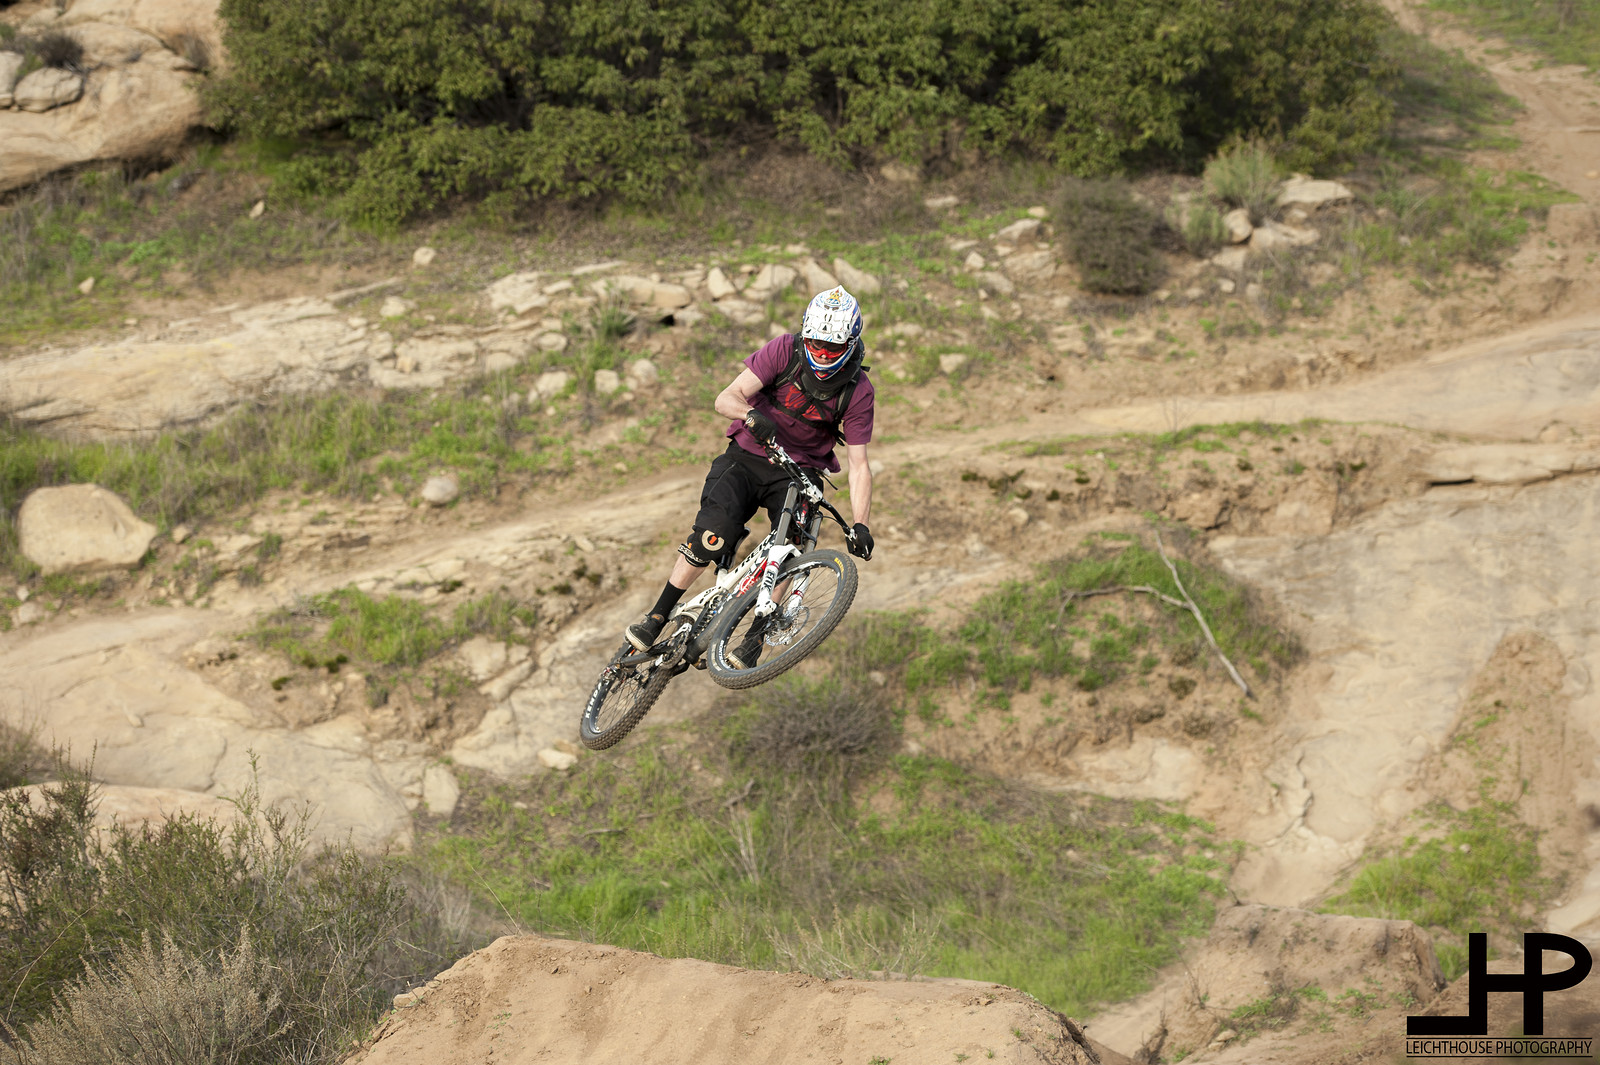 Curtis doublin' - LeichtHouse photography - Mountain Biking Pictures - Vital MTB